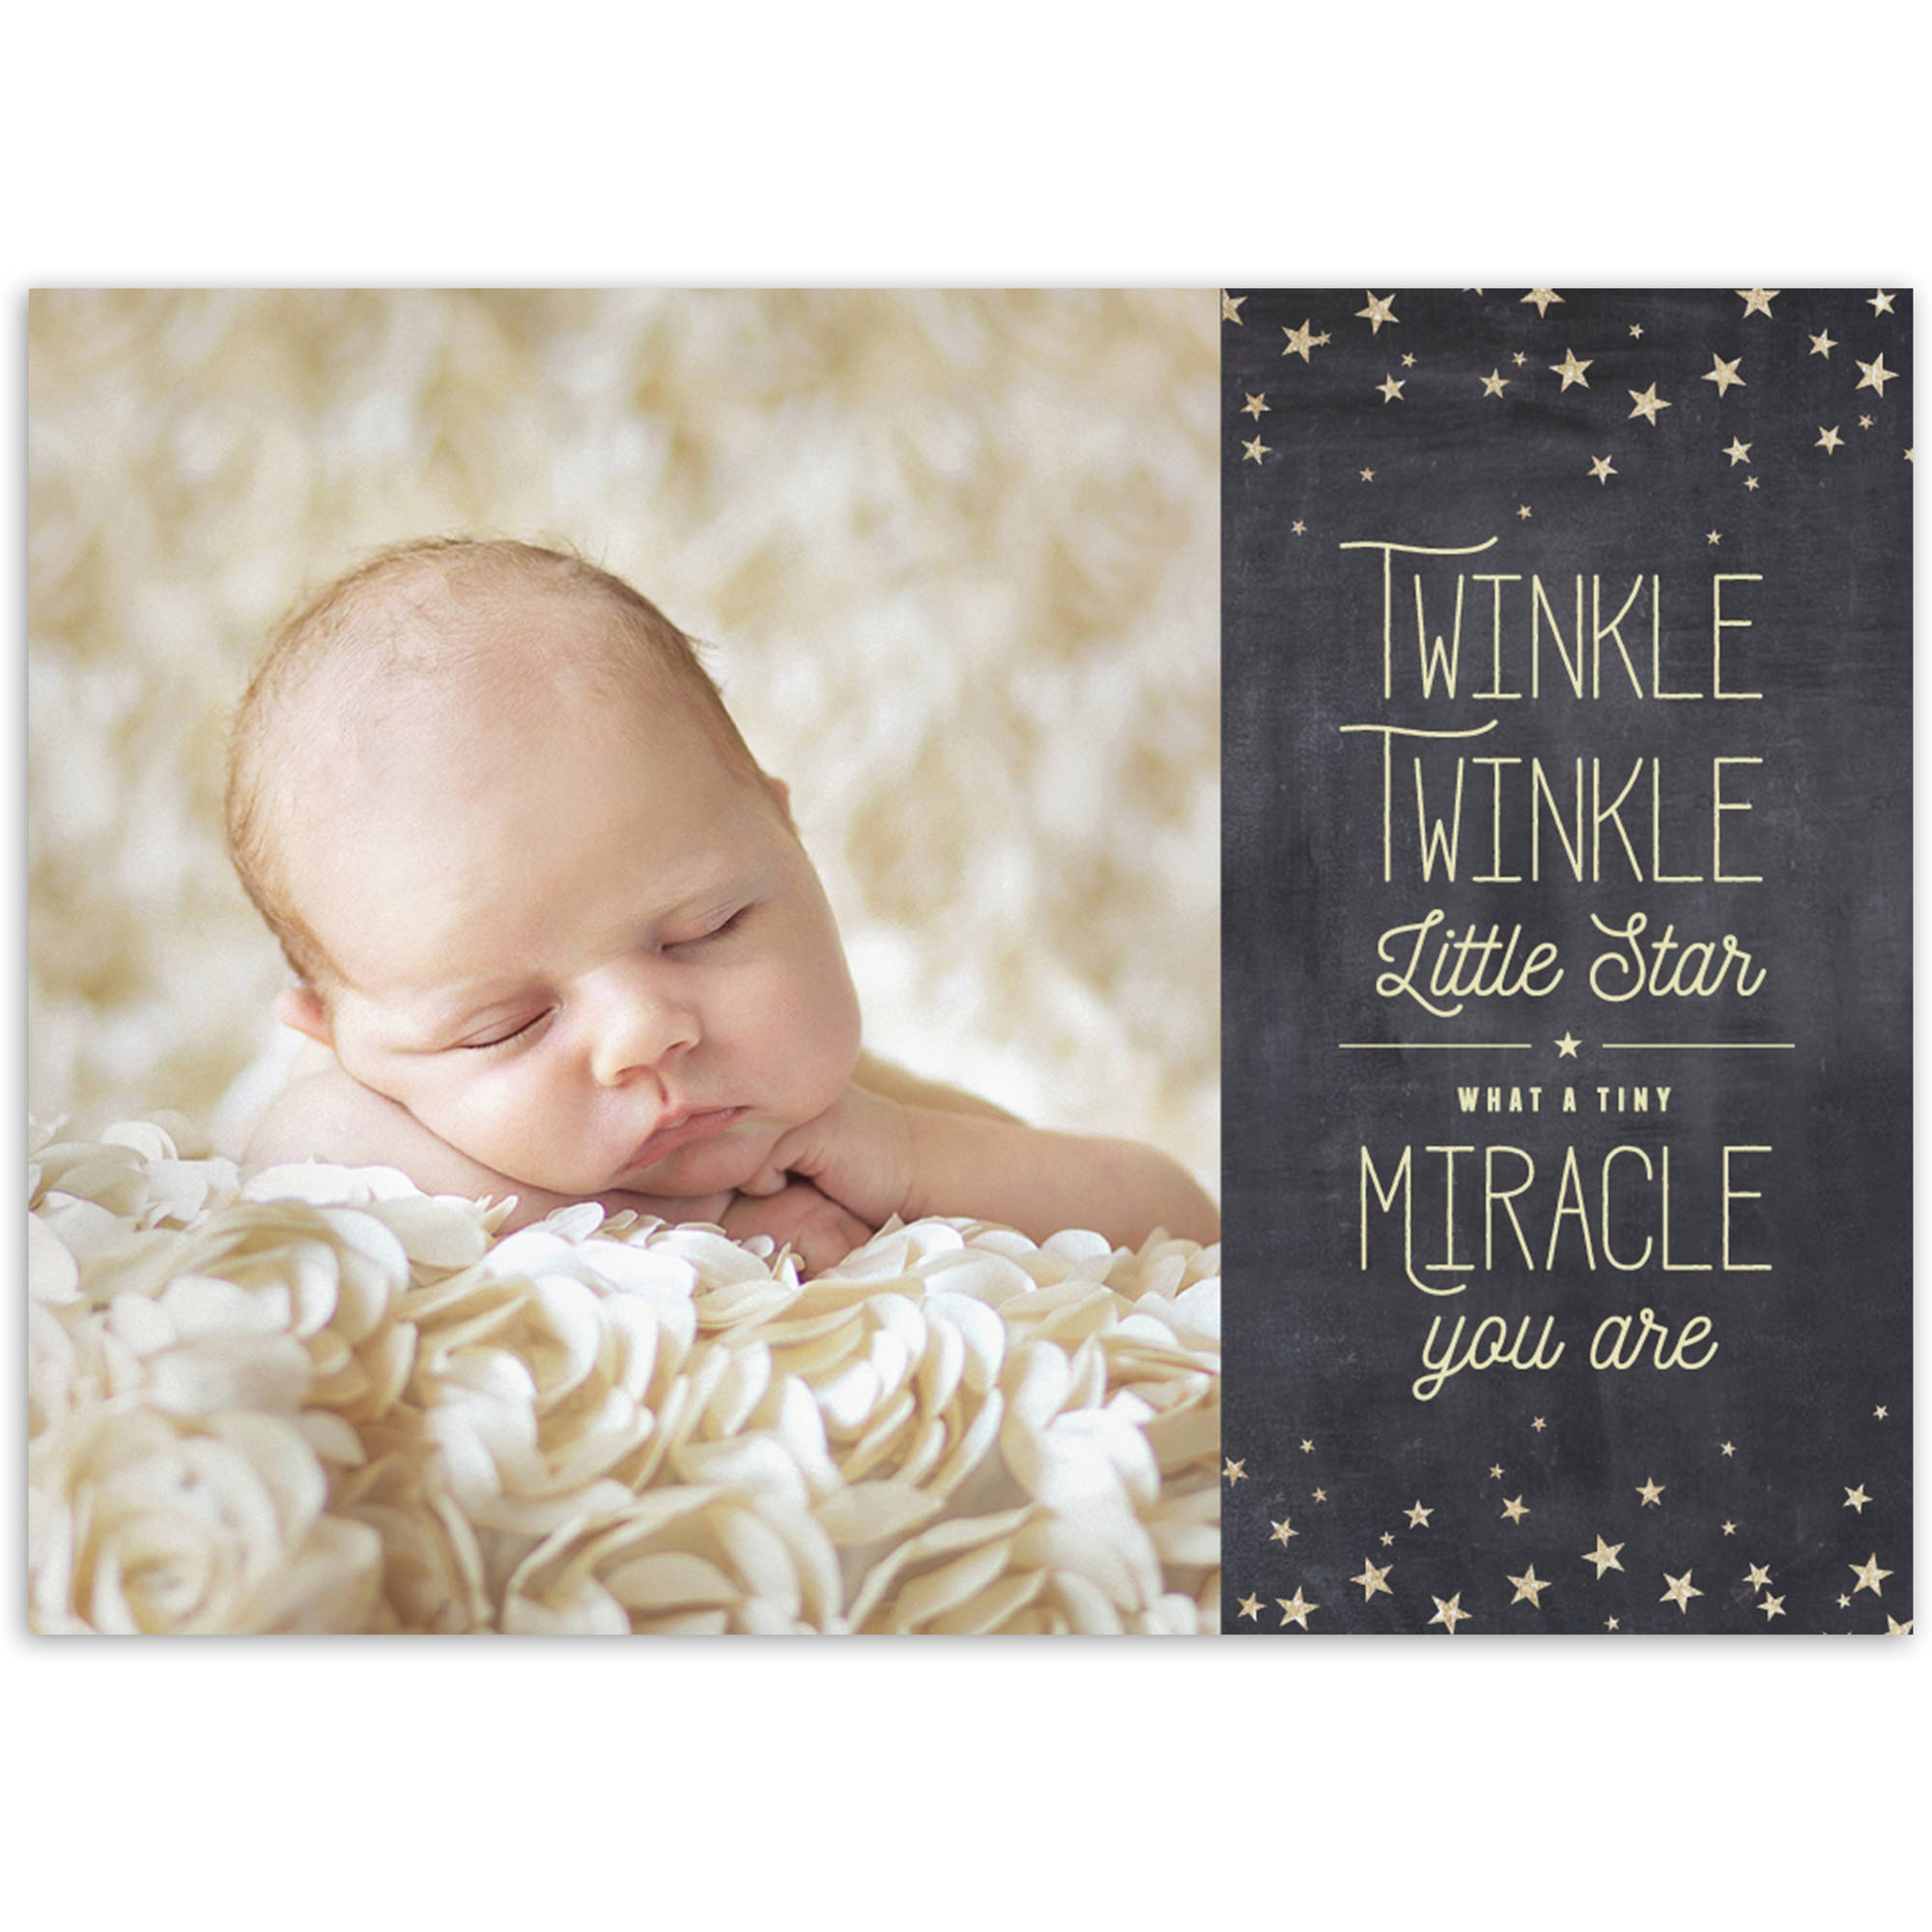 Twinkle Twinkle Baby Announcement